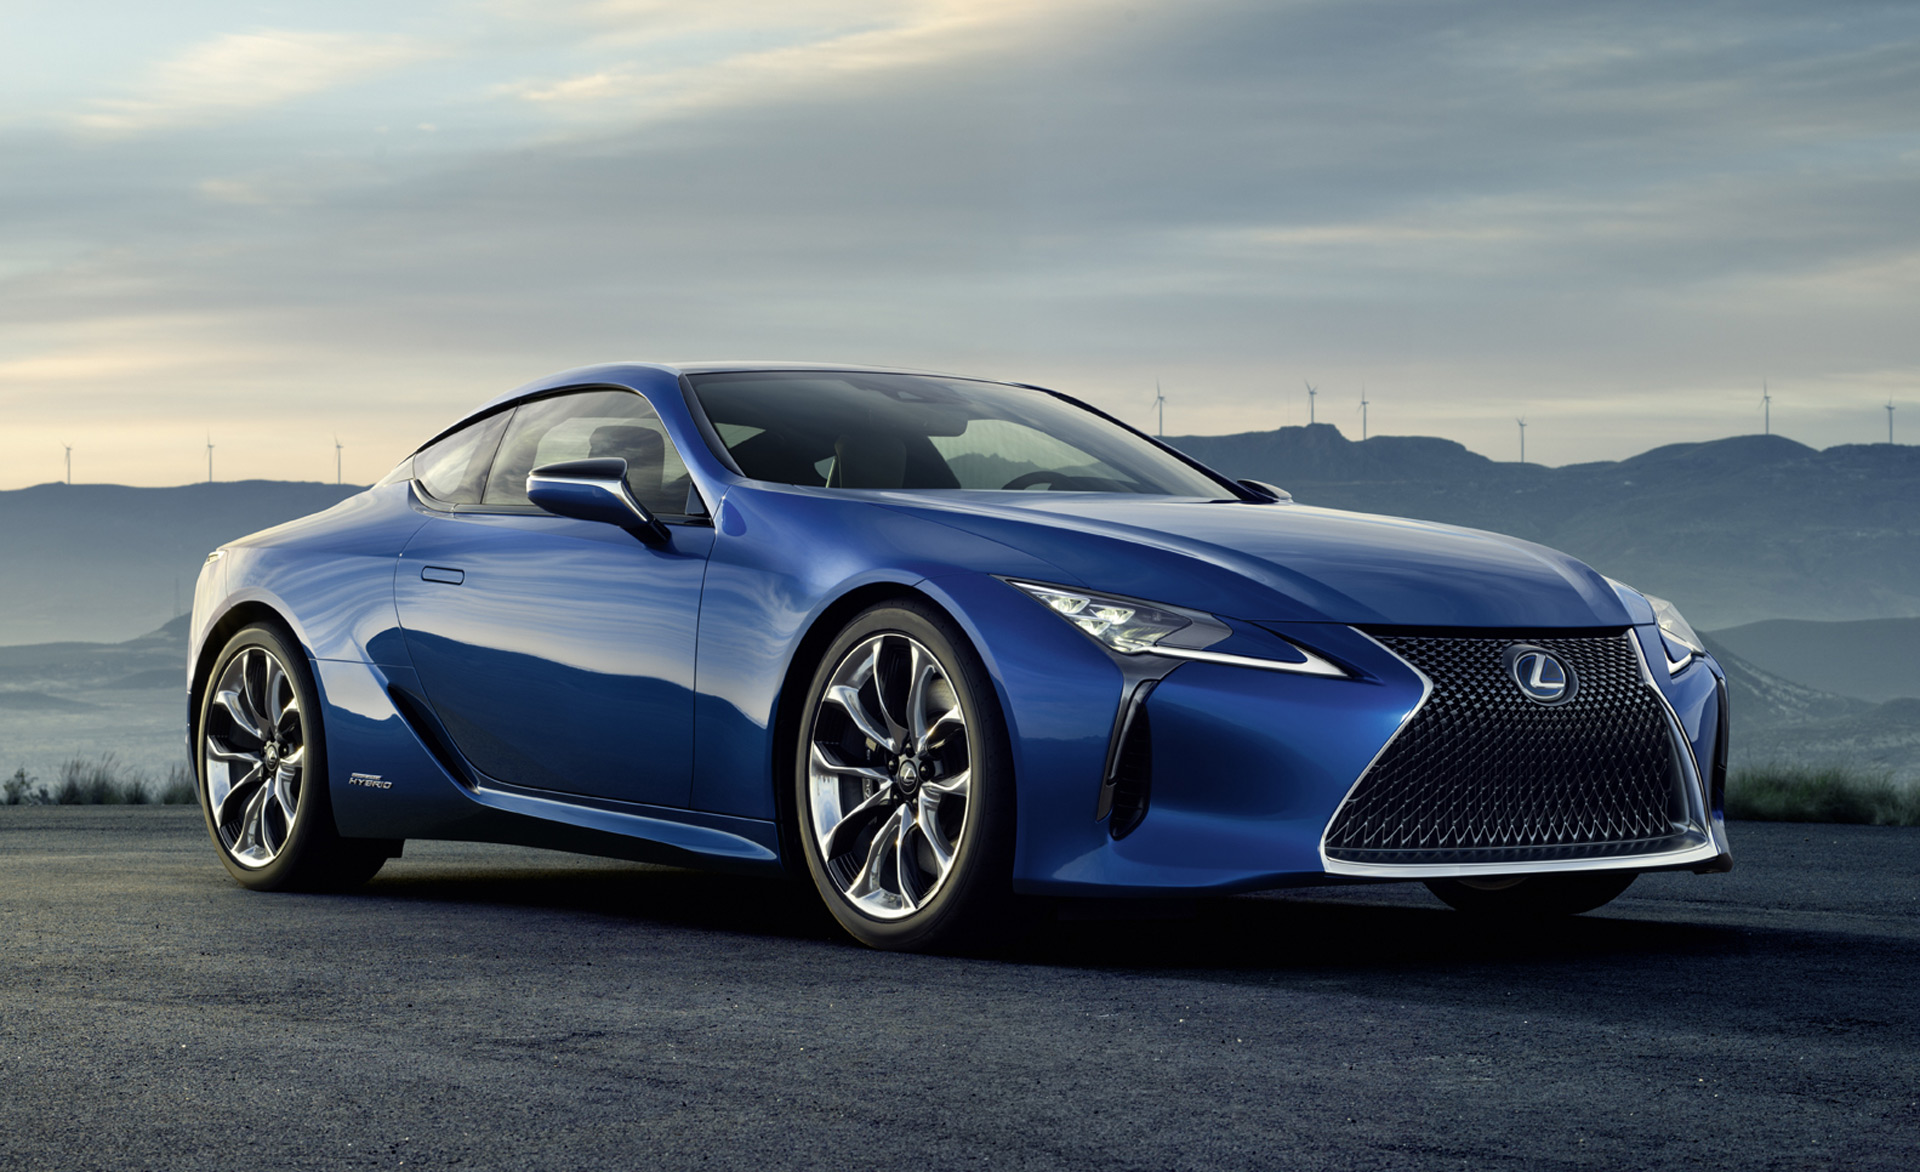 2018 Lexus Lc 500h Geneva Debut For Hybrid Performance ...